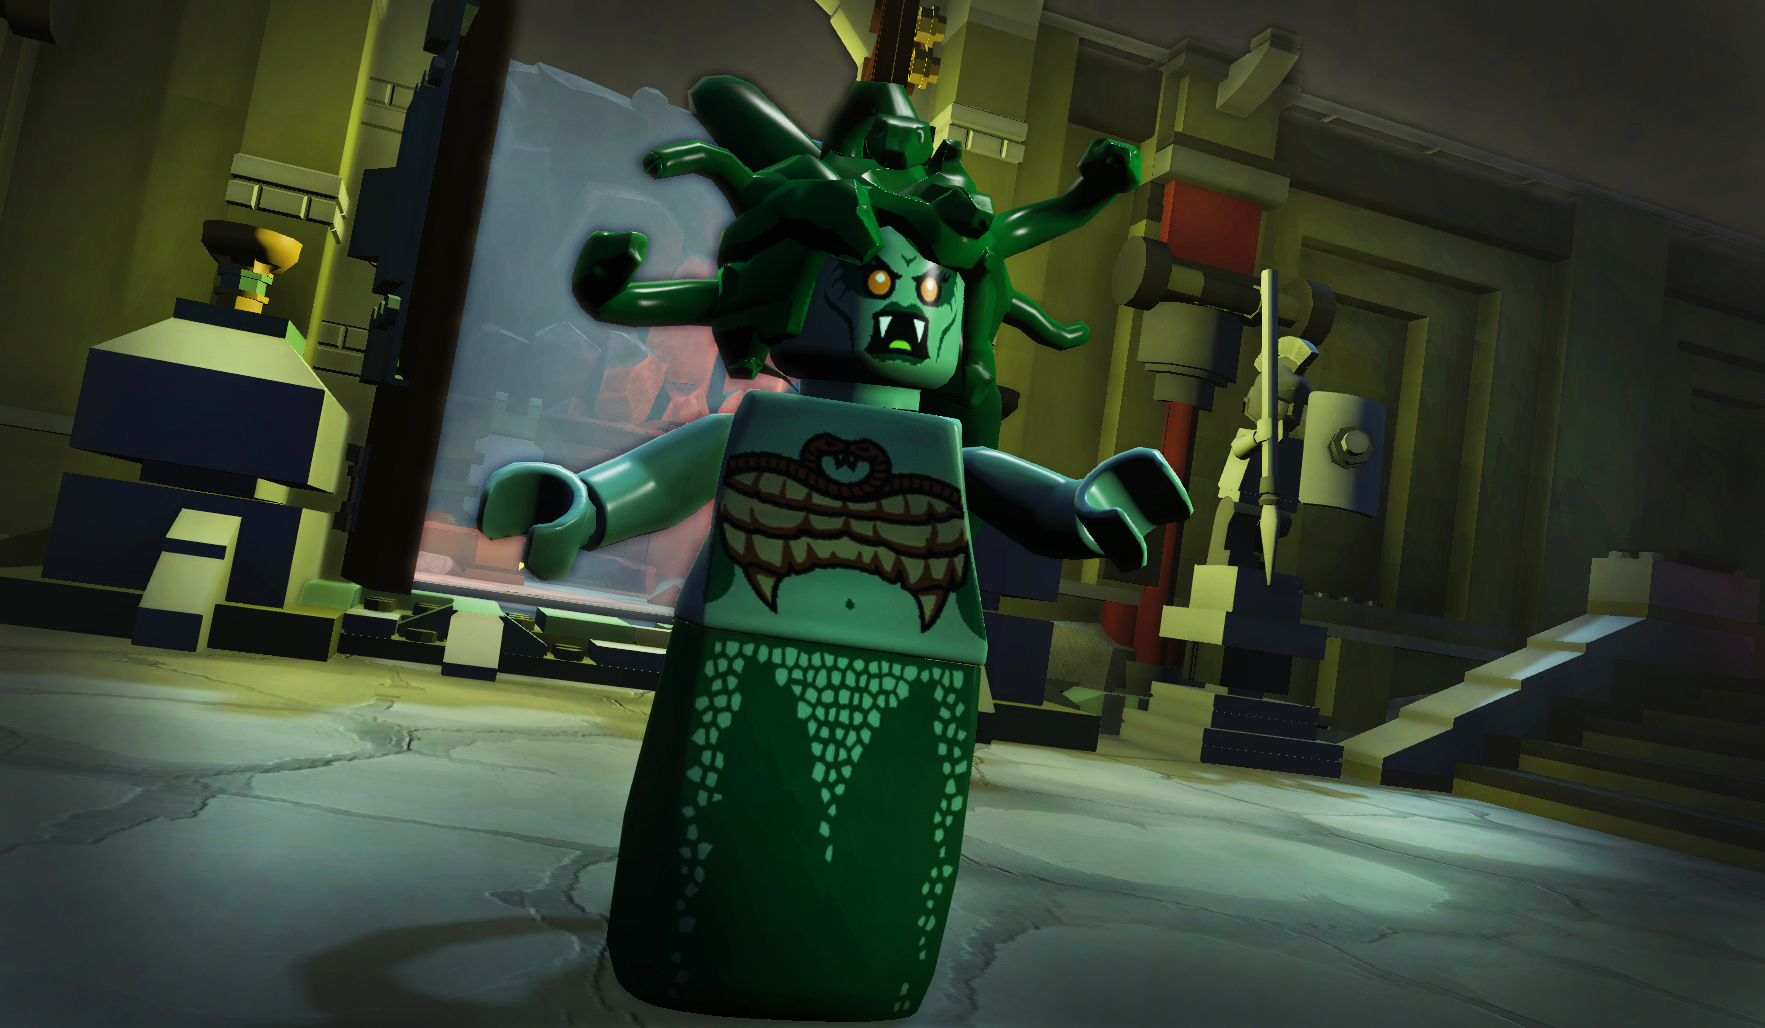 LEGO Minifigures Online beta sign-up launched